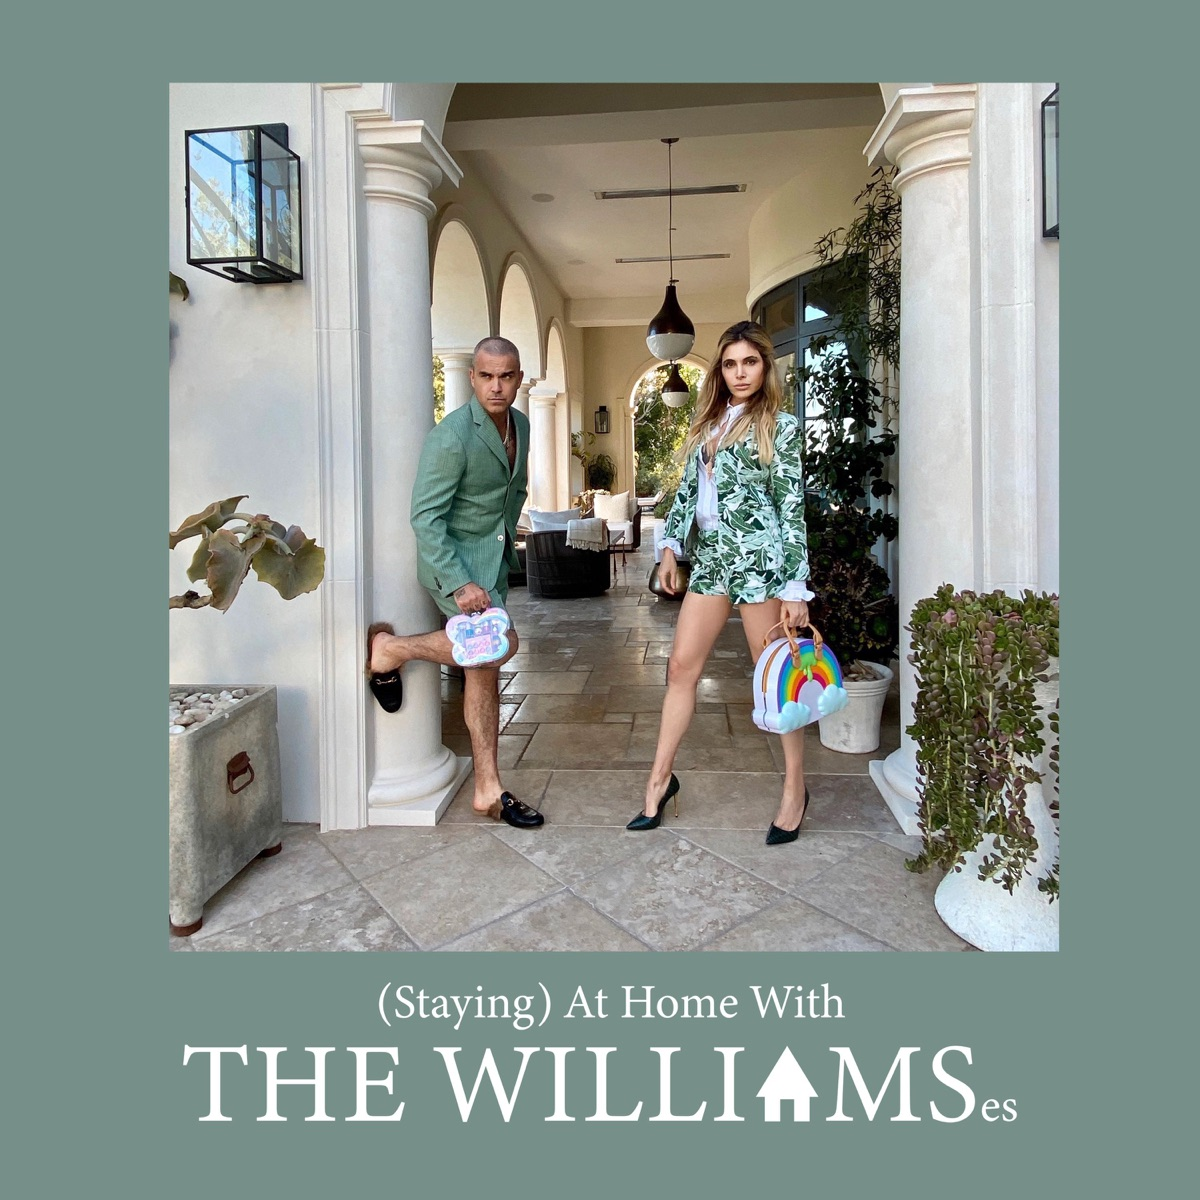 (Staying) At Home With The Williamses